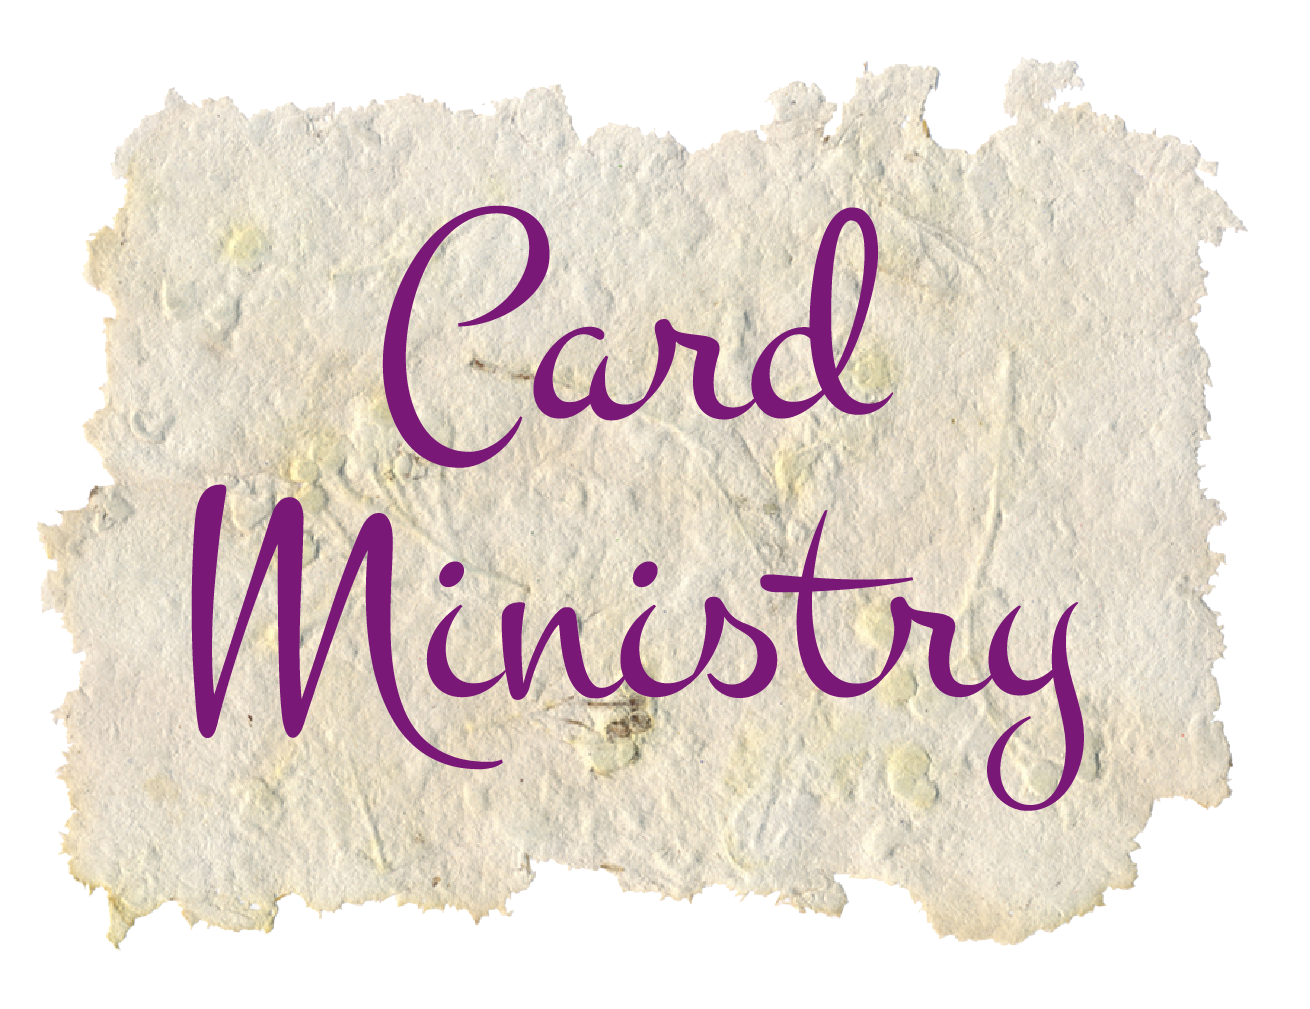 card-ministry-logo.png